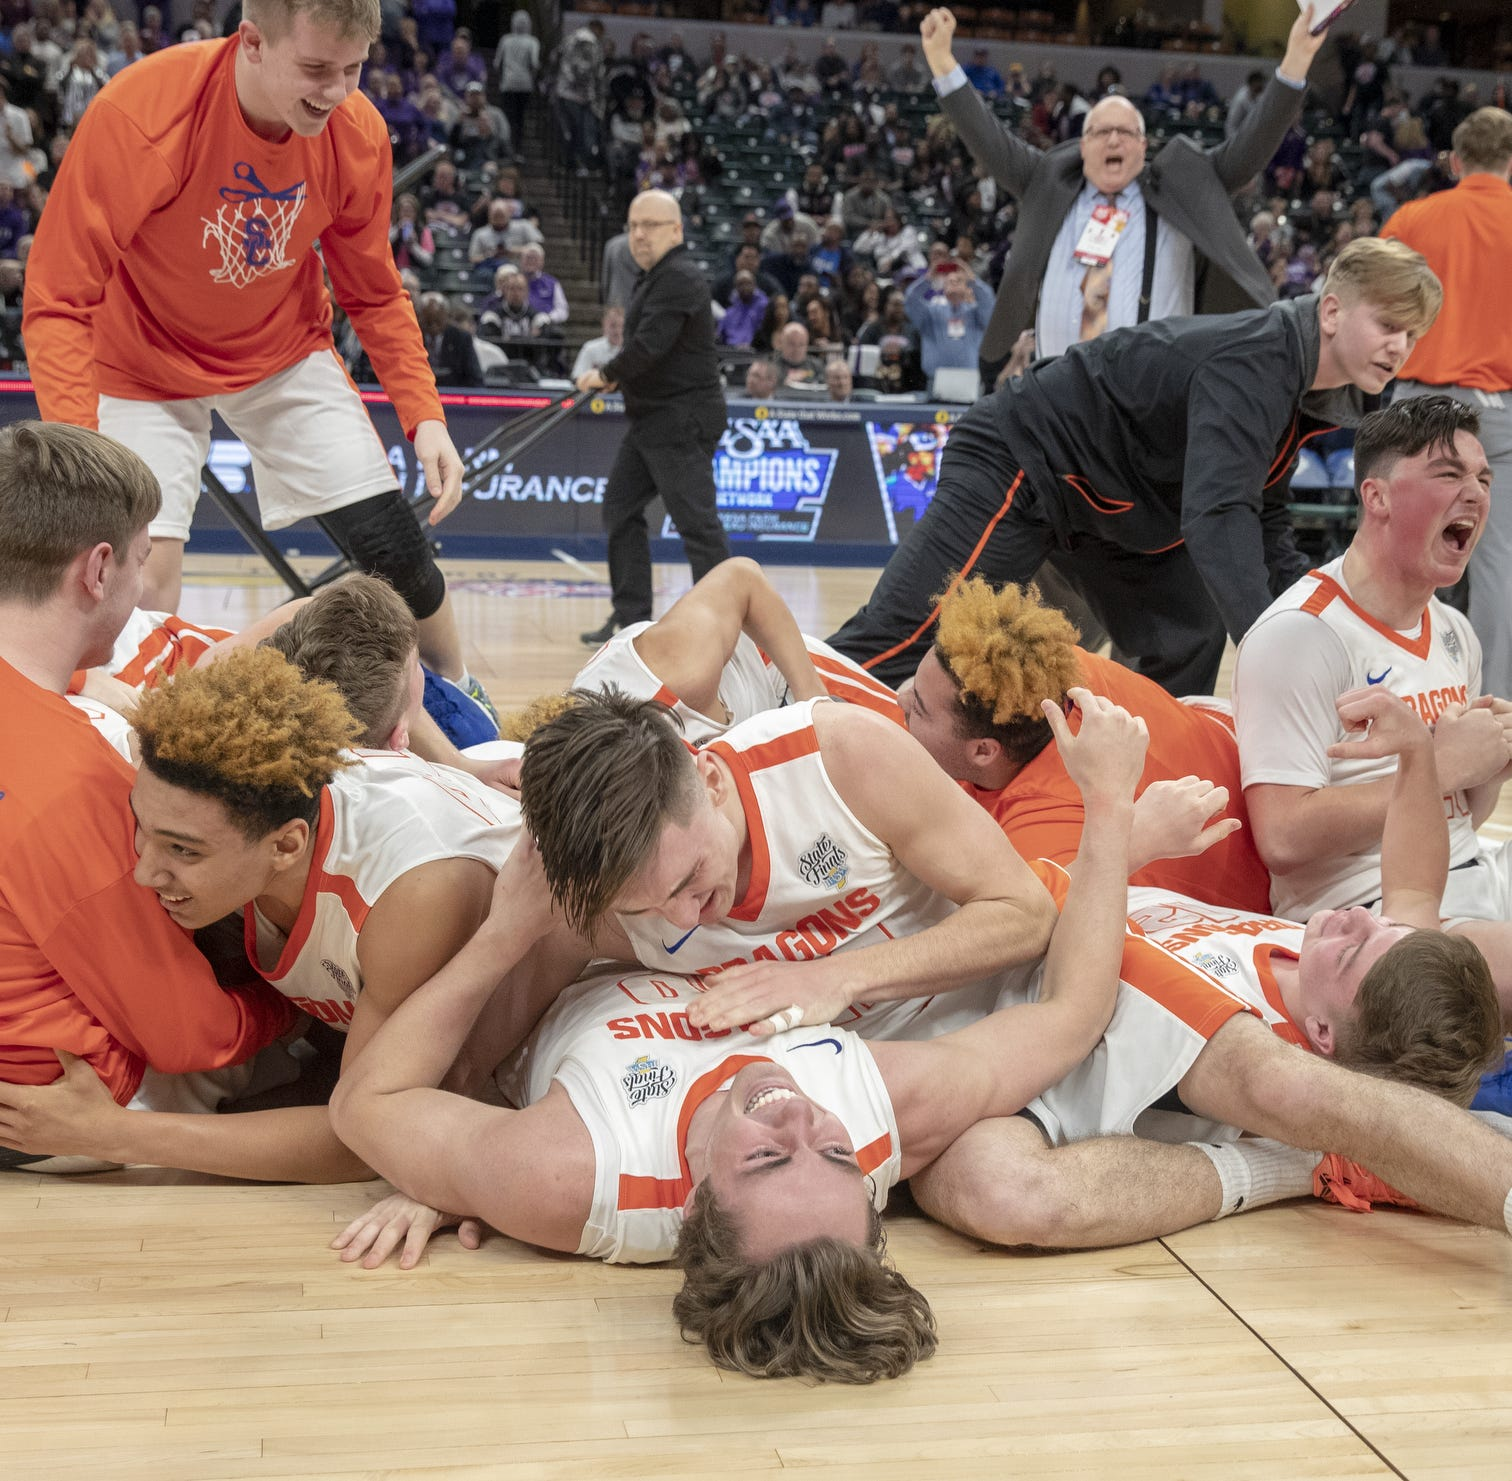 Celebration after Silver Creek High School defeated Culver Academies 52-49 in the Class 3S Boys Basketball State Final, Bankers Life Fieldhouse, Indianapolis, Saturday, March 23, 2019.